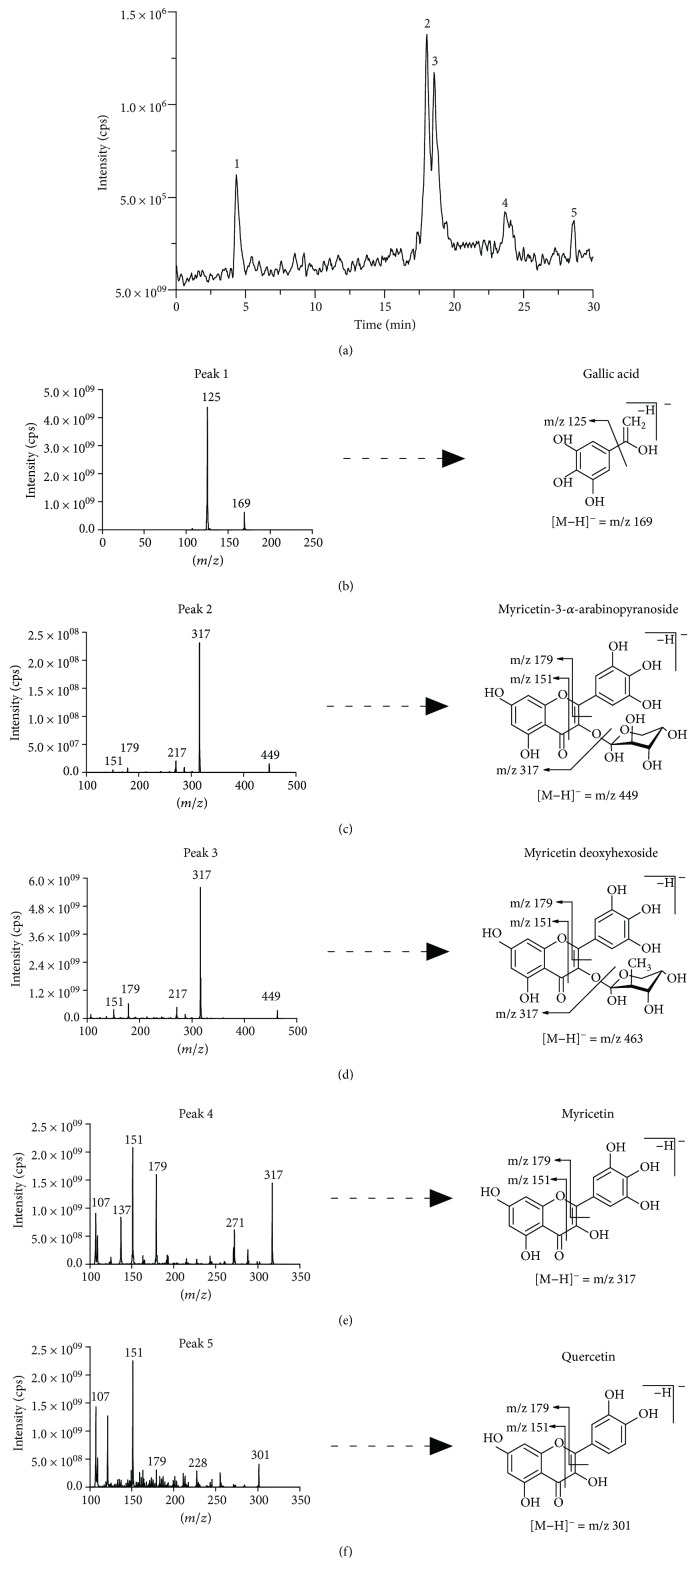 LC-MS/MS analysis of <t>PESc</t> polyphenol content. <t>RP-HPLC-MS/MS</t> chromatographic profile of PESc (a) was obtained. PESc was analyzed by MS/MS using the MRM method. Gallic acid was detected by using m/z 169/125, m/z 169/97, and m/z 169/79. For myricetin, MRM transitions corresponded to m/z 317/271, m/z 317/151, and m/z 317/179 while for glycosylated forms of myricetin m/z 449/316, m/z 449/271, and m/z 449/179. Finally, quercetin was followed by the m/z 301/151 and m/z 301/179. Chemical identification of the structure of the compounds present in PESc was analyzed by mass spectrometry. Representative structures and fragmentation patters of gallic acid (b); myricetin-3- α -arabinopyranoside (c), myricetin deoxyhexoside (d), myricetin (e), and quercetin (f) are shown. Data is representative of at least three independent experiments.